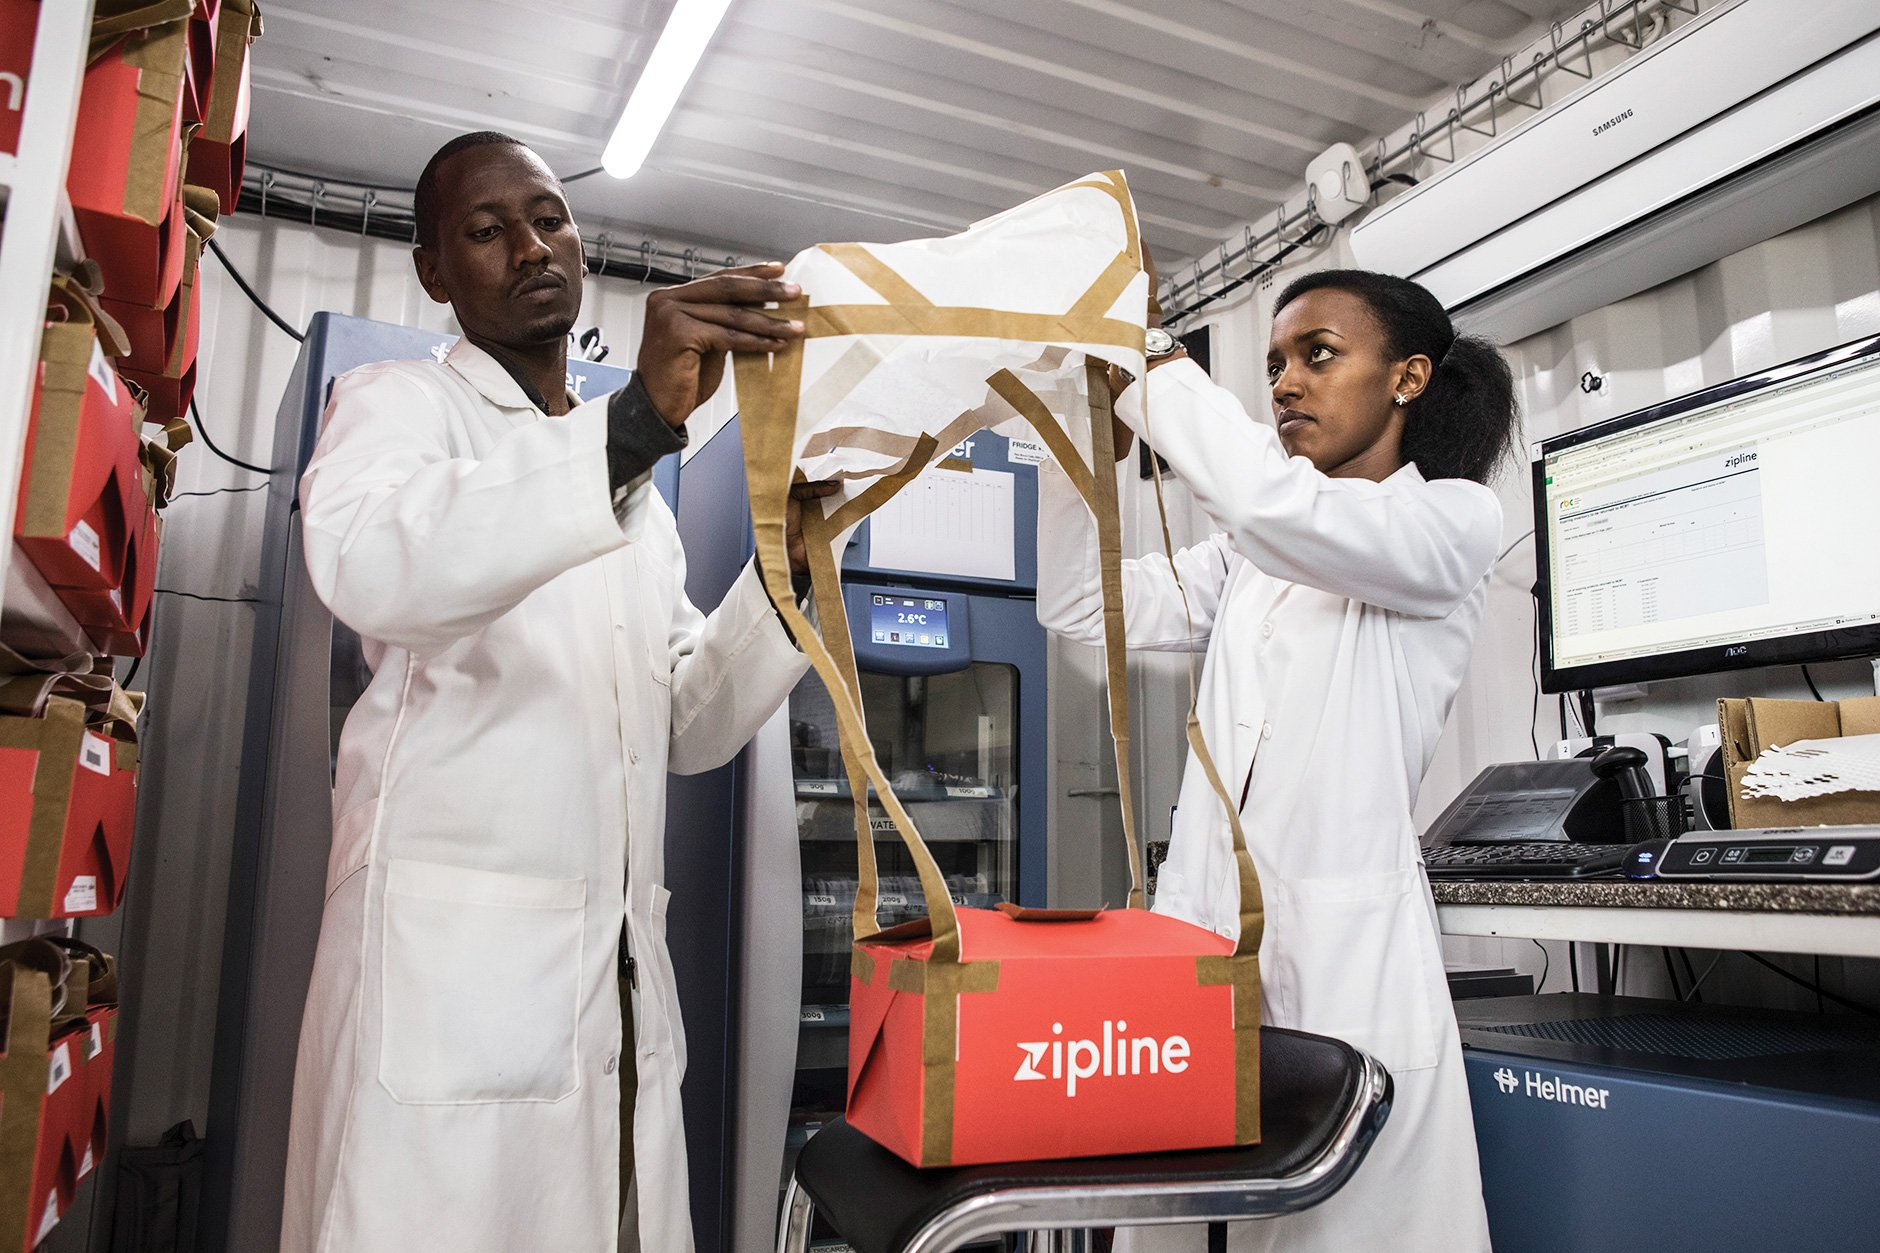 Zipline S Ambitious Medical Drone Delivery In Africa Mit